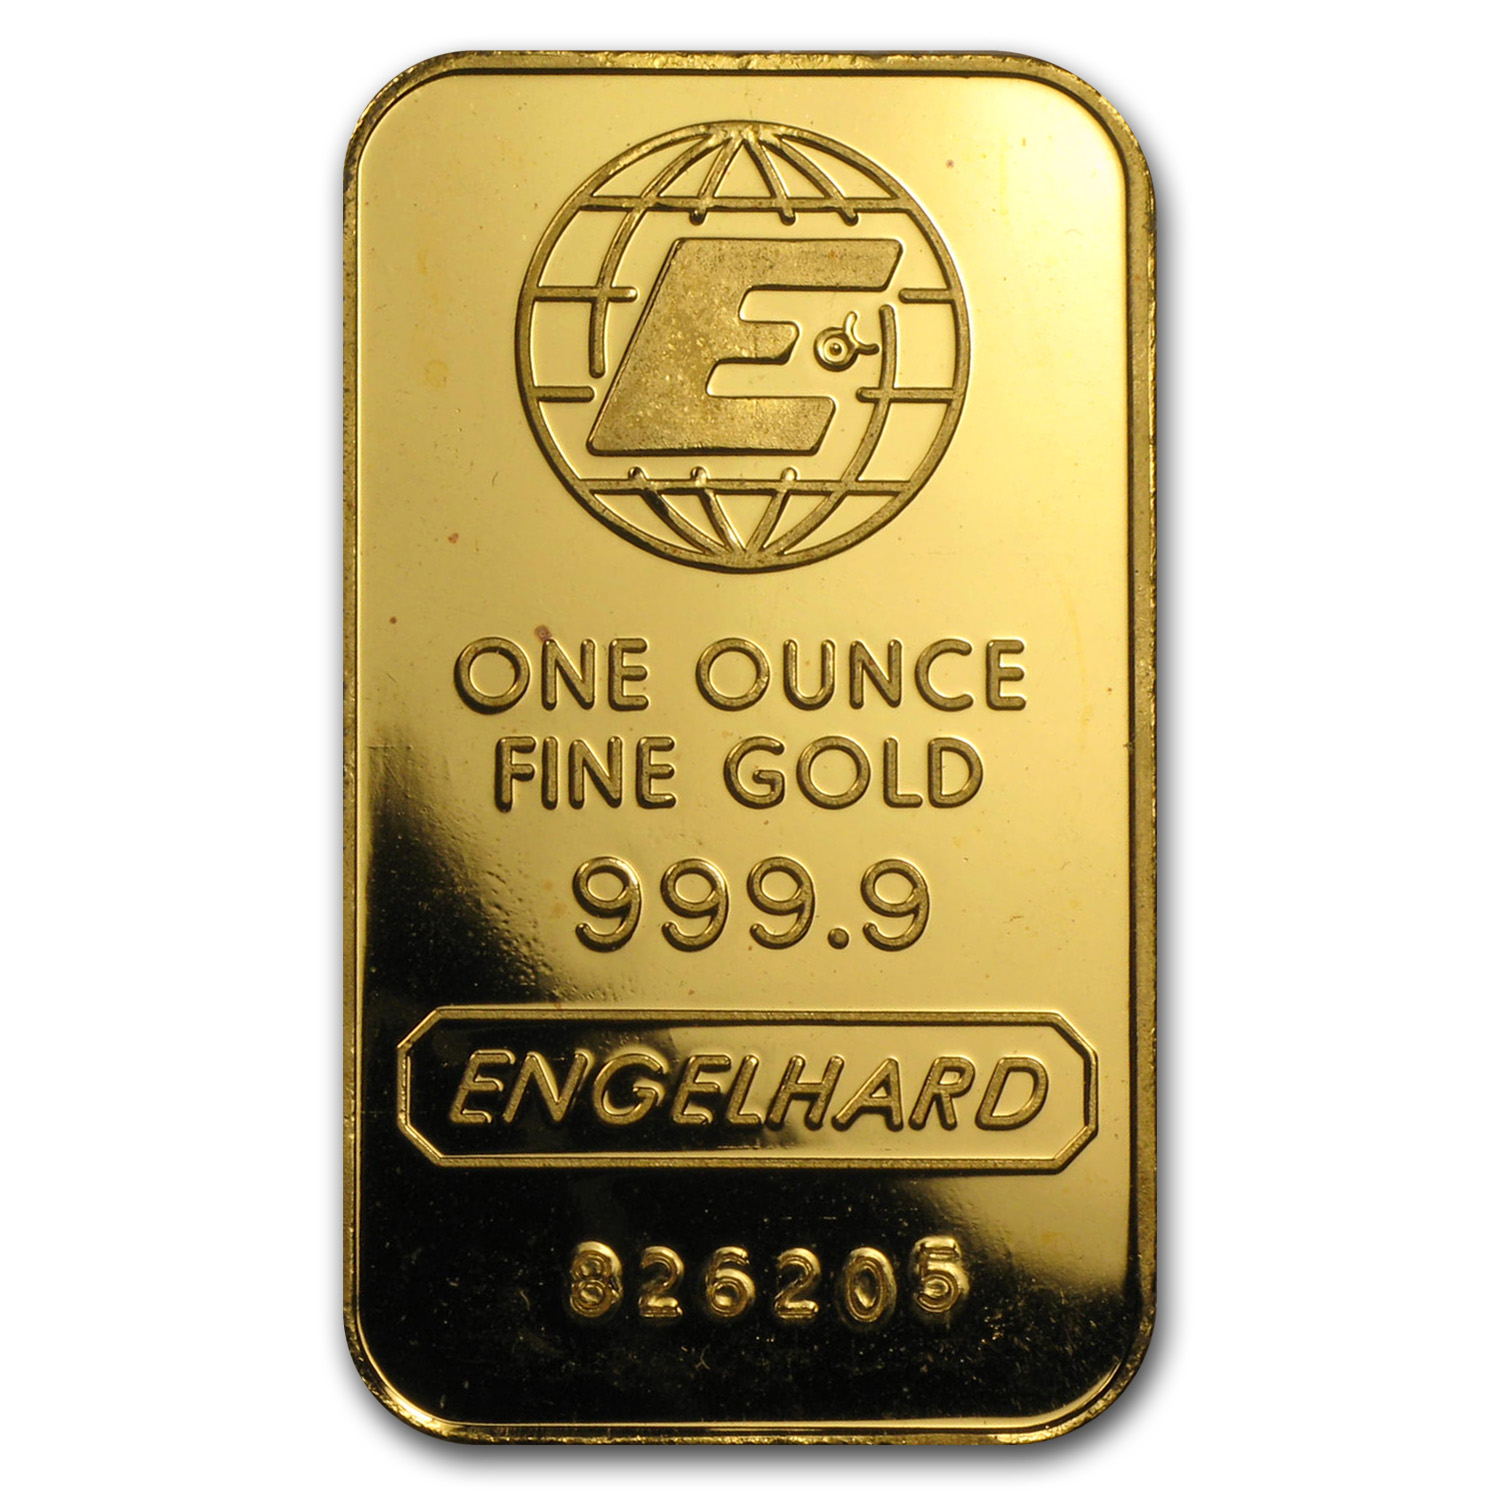 1 oz Gold Bar - Engelhard ('E' logo, No Assay)